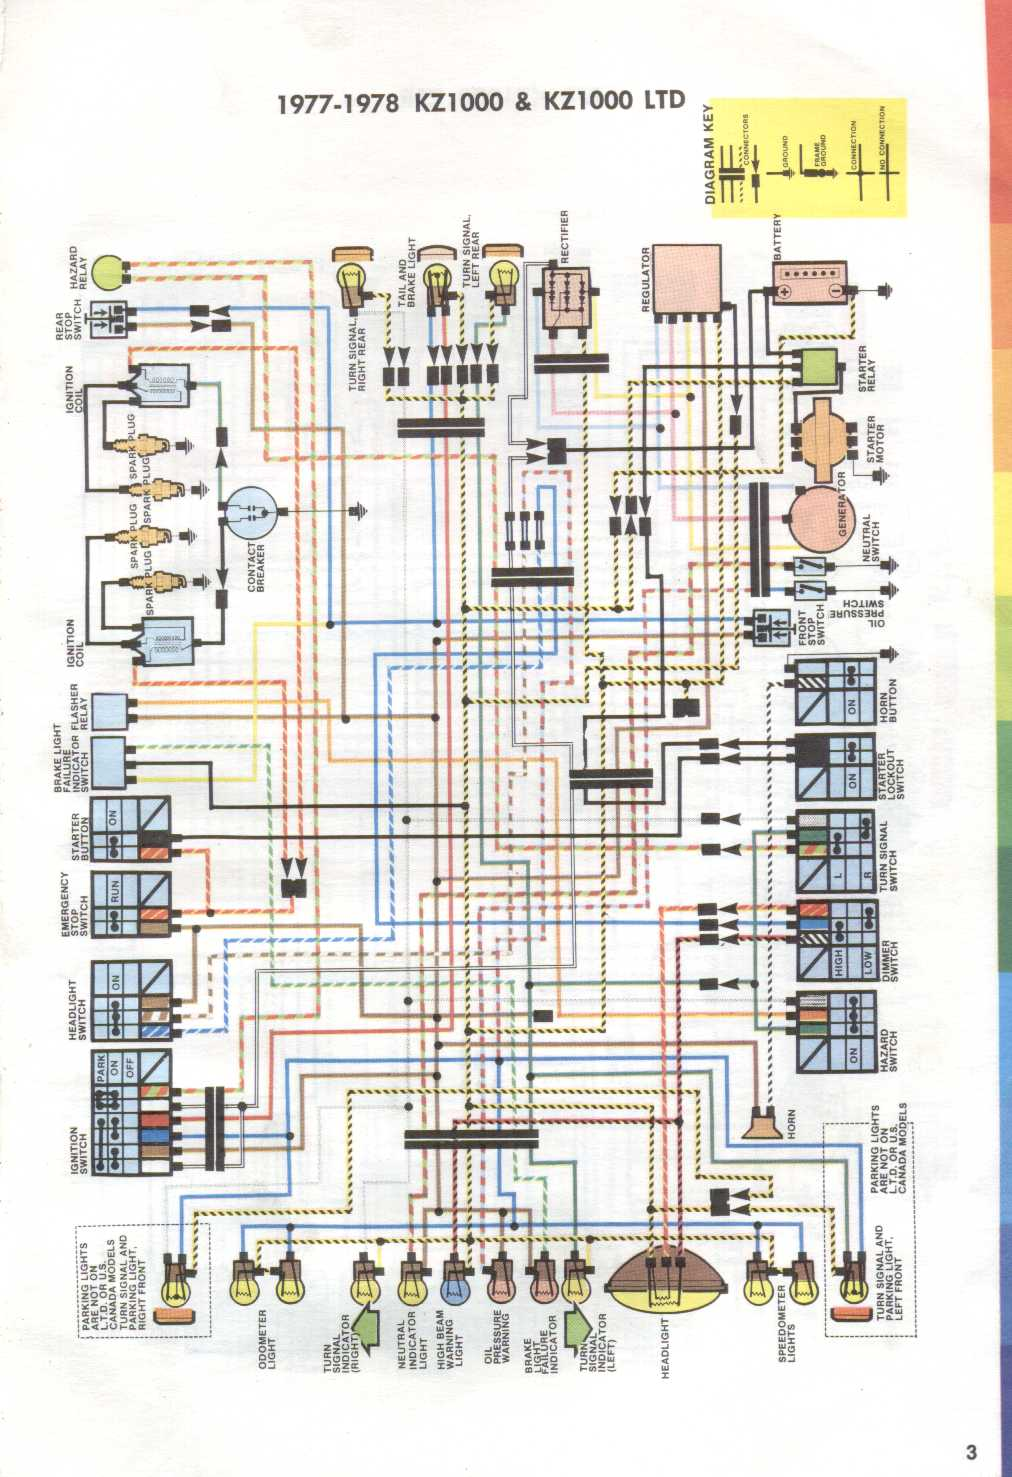 wiring diagram for 1977 1978 kawasaki kz1000 and kz1000ltd evan rh cycles evanfell com 2006 kawasaki z1000 wiring diagram 2006 kawasaki z1000 wiring diagram